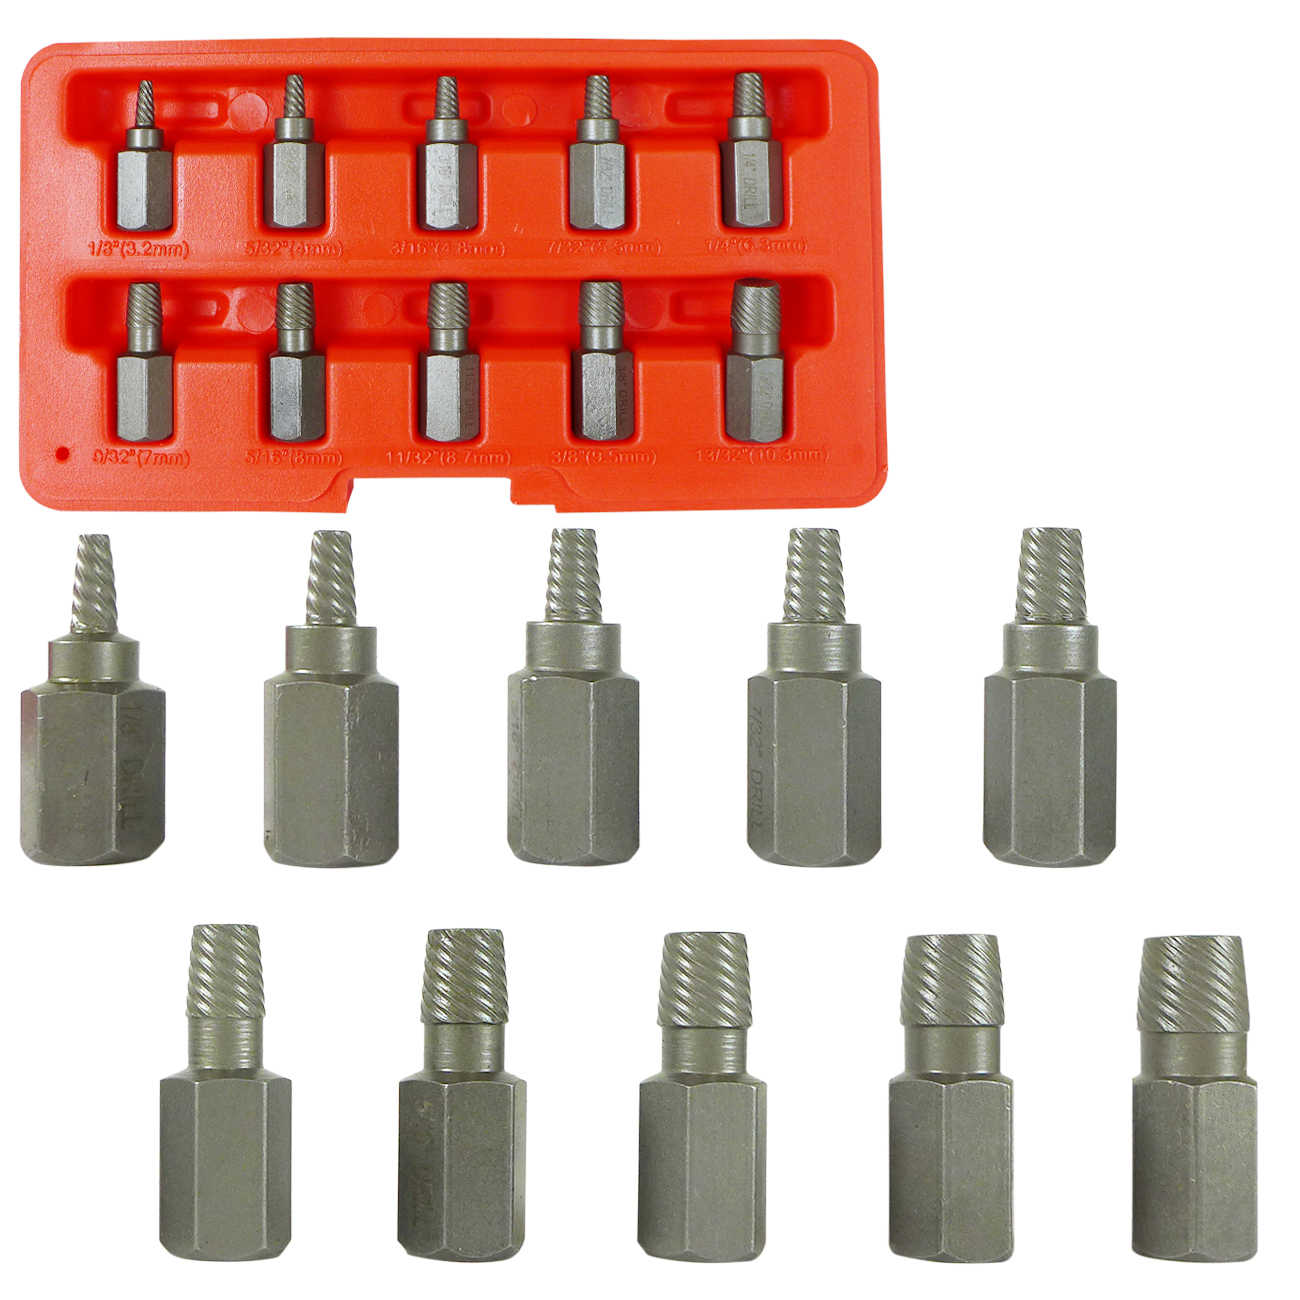 Neiko Multi-Spline Screw Extractor | 10pc Set Hex Head Bit Socket Wrench Bolt Remover